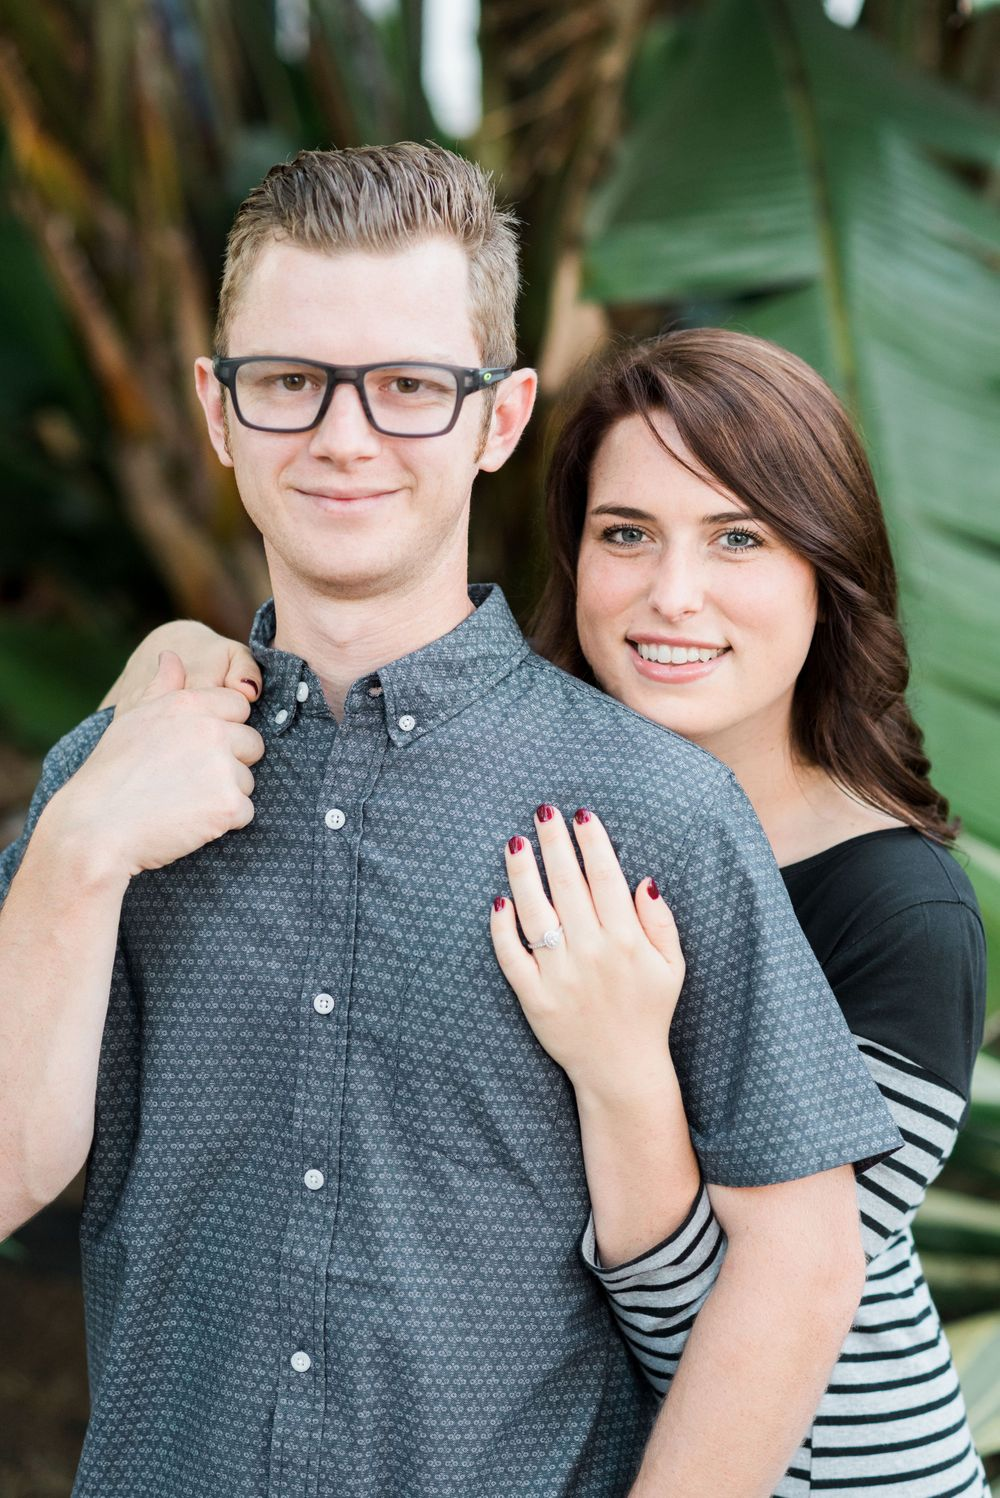 Engagement session in San Clemente, California